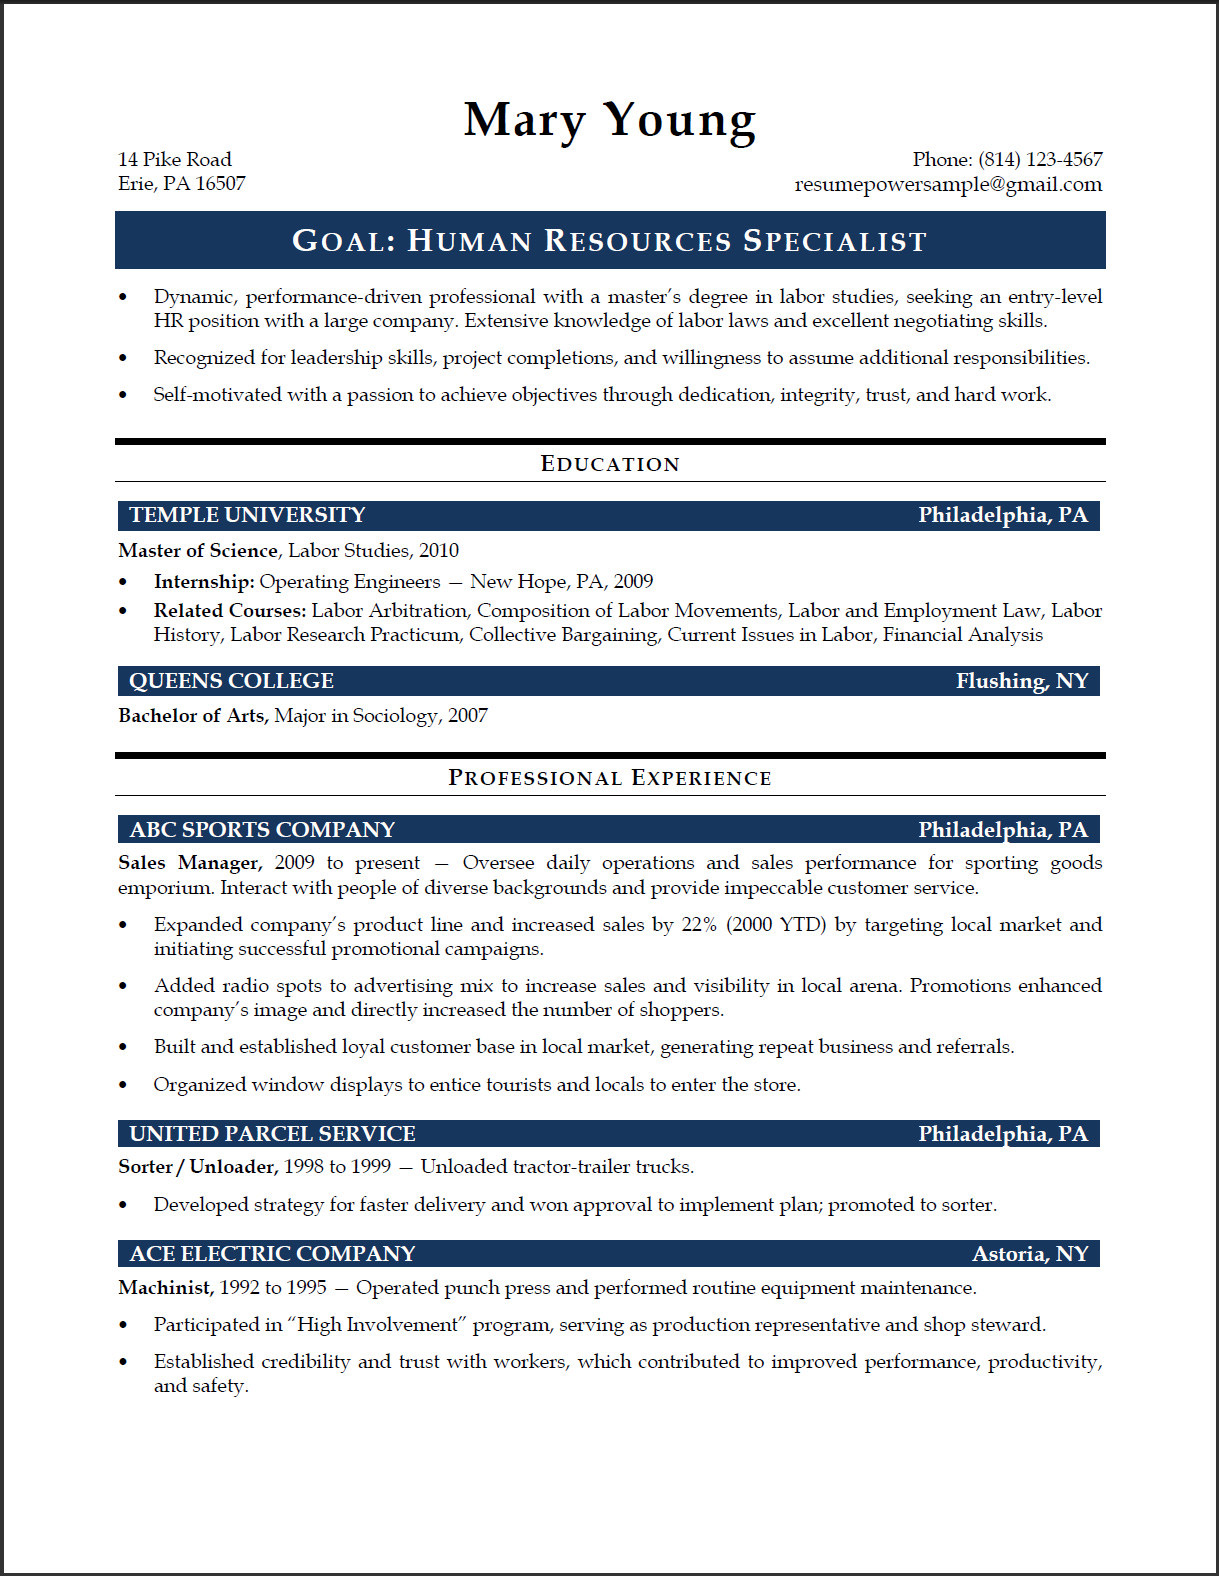 HR Specialist Sample Resume